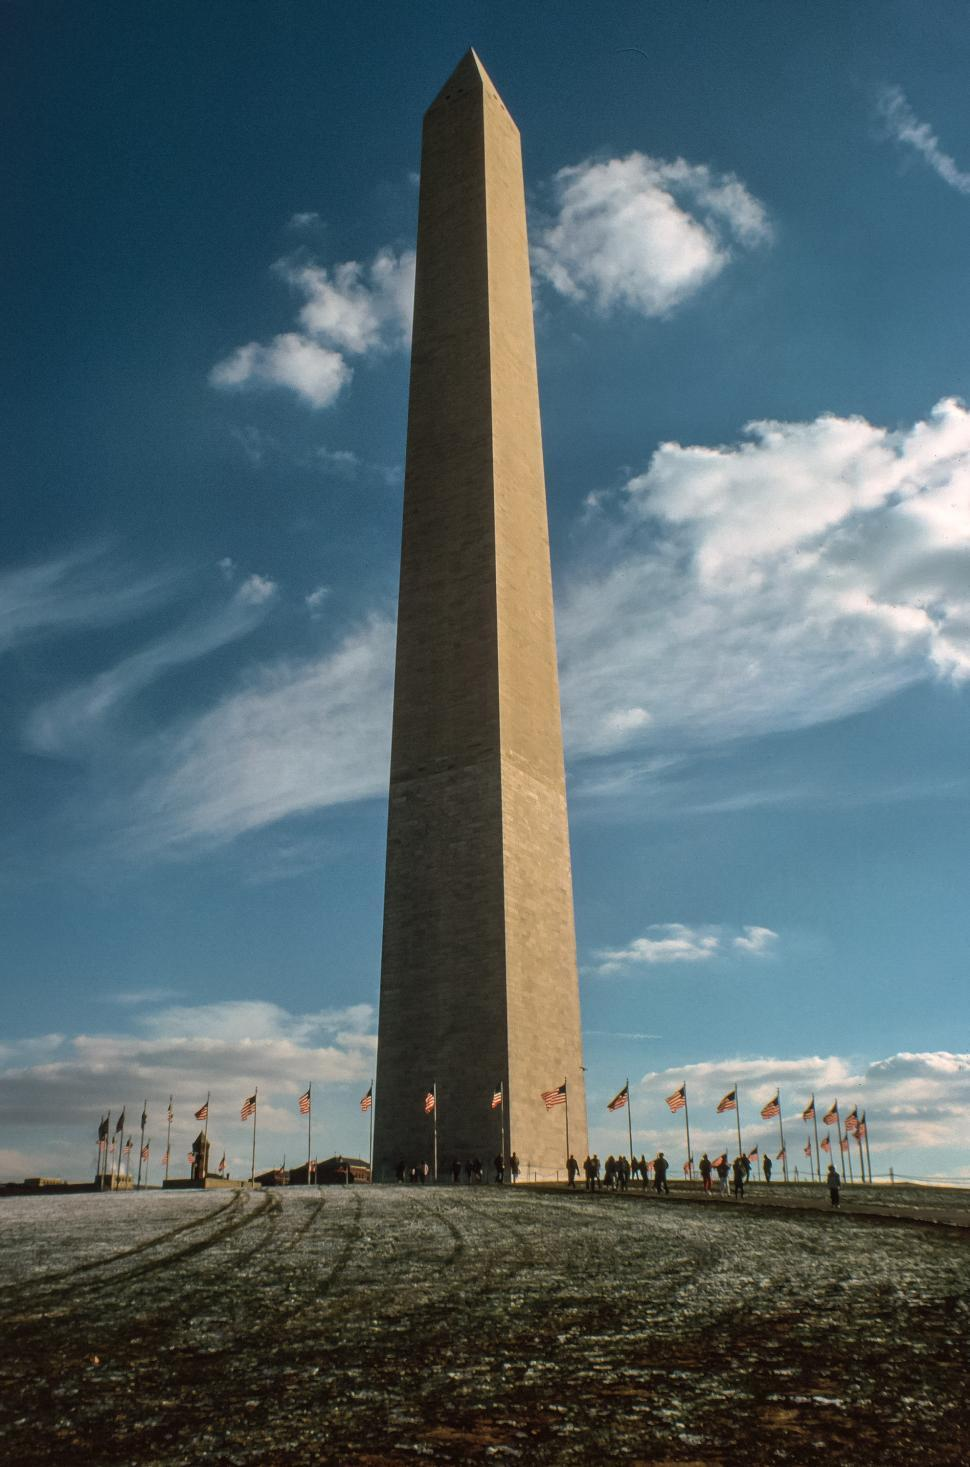 Free image of The Washington Monument on a sunny day.